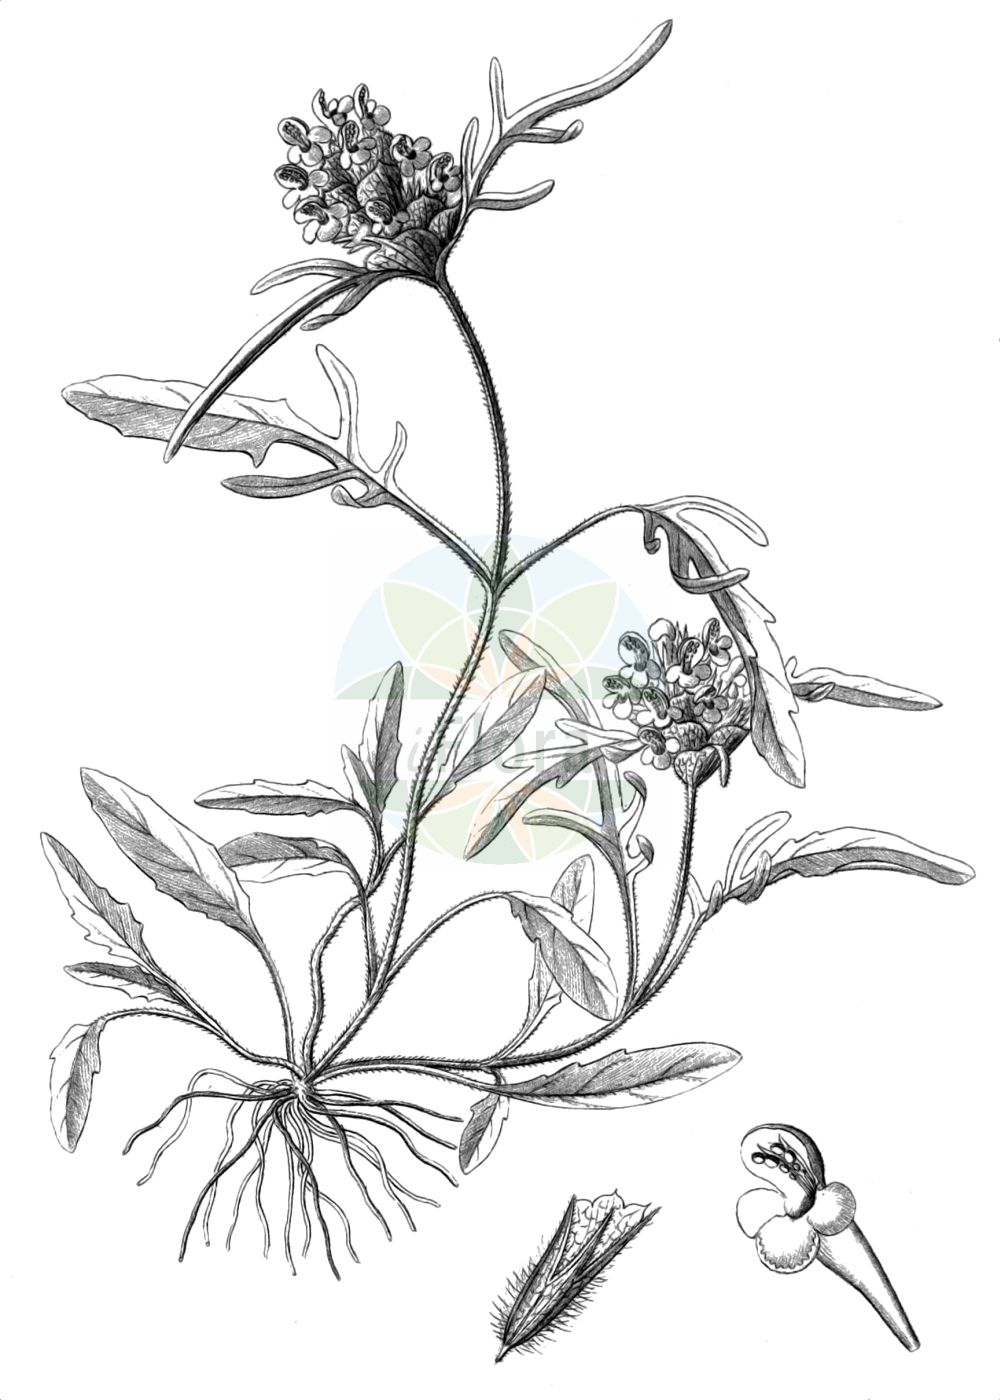 Historische Abbildung von Prunella laciniata (Weisse Braunelle - Cut-leaved Selfheal). Das Bild zeigt Blatt, Bluete, Frucht und Same. ---- Historical Drawing of Prunella laciniata (Weisse Braunelle - Cut-leaved Selfheal).The image is showing leaf, flower, fruit and seed.(Prunella laciniata,Weisse Braunelle,Cut-leaved Selfheal,Prunella afriquena,Prunella alba,Prunella integerrima,Prunella laciniata,Prunella sulphurea,Prunella vulgaris var. laciniata,Weisse Braunelle,Schlitzblaettrige Braunelle,Schlitzblaettrige Brunelle,Weisse Brunelle,Cut-leaved Selfheal,Cutleaf Selfheal,White Selfheal,Prunella,Braunelle,Selfheal,Lamiaceae,Lippenbluetengewaechse,Lippenbluetler,Nettle family,Blatt,Bluete,Frucht,Same,leaf,flower,fruit,seed,Reichenbach (1823-1832))